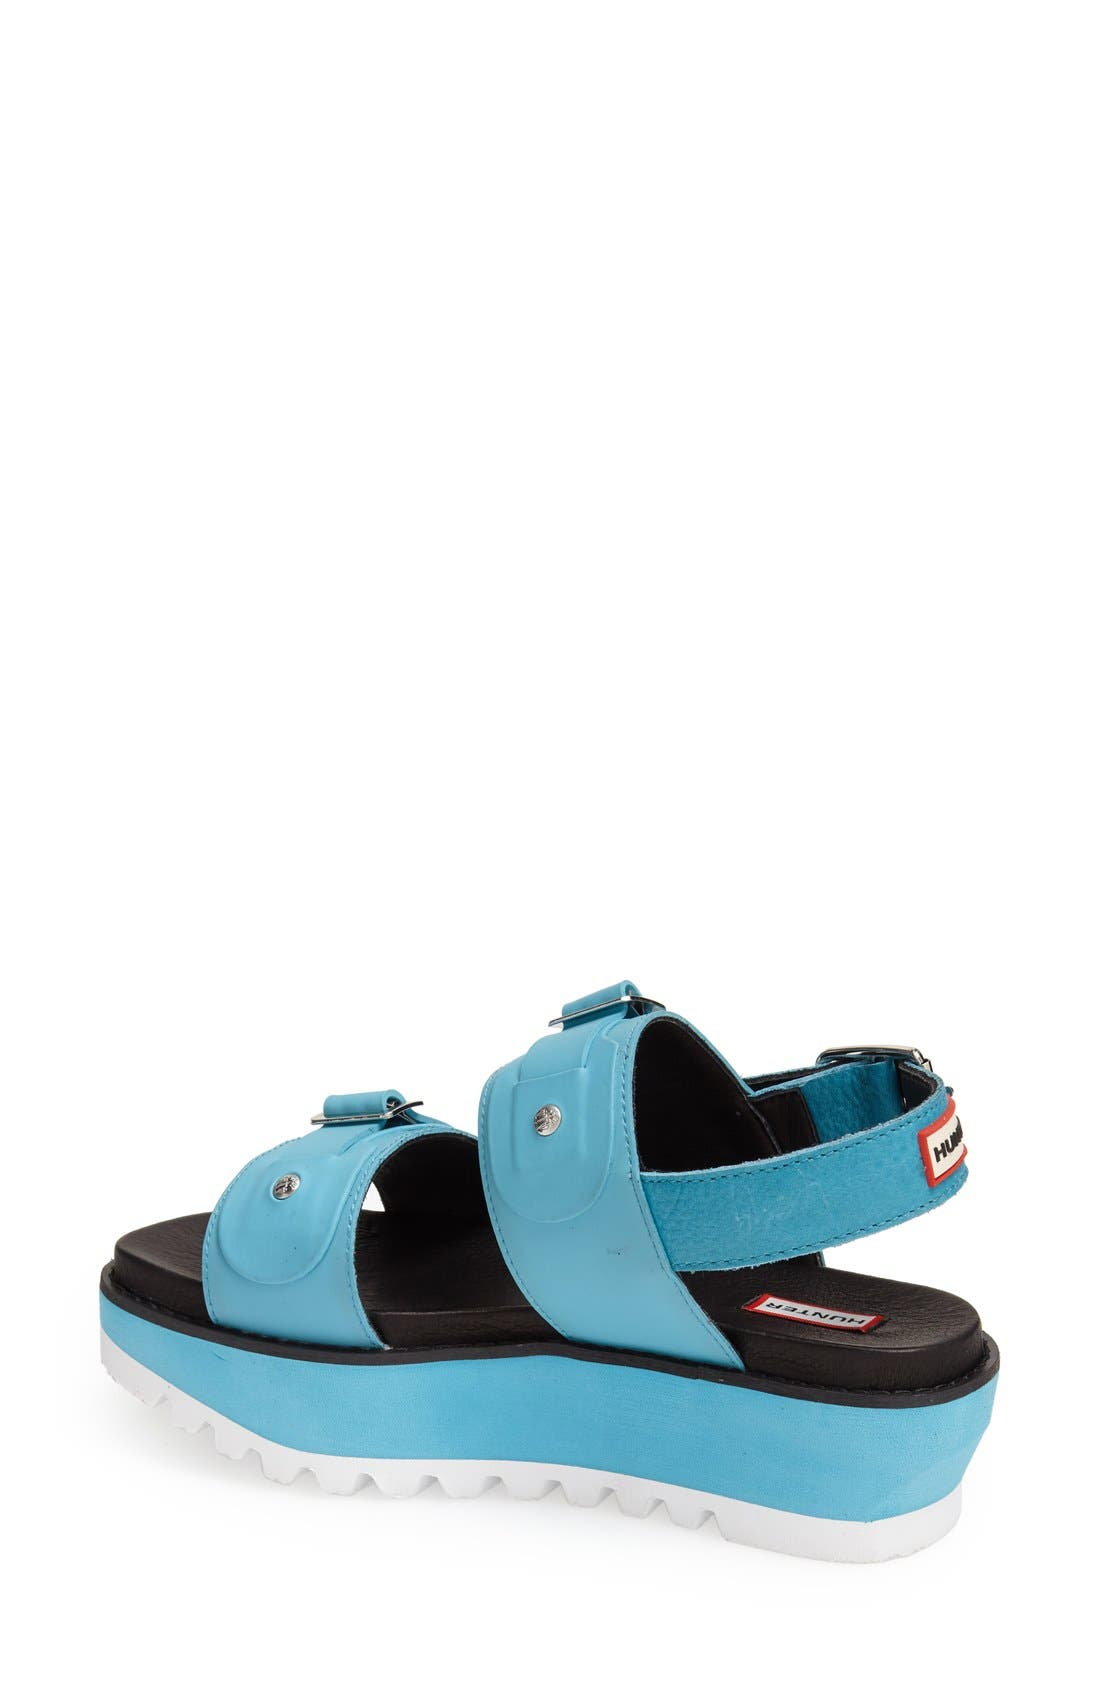 Alternate Image 4  - Hunter Double Buckle Mid Flatform Sandal (Women)